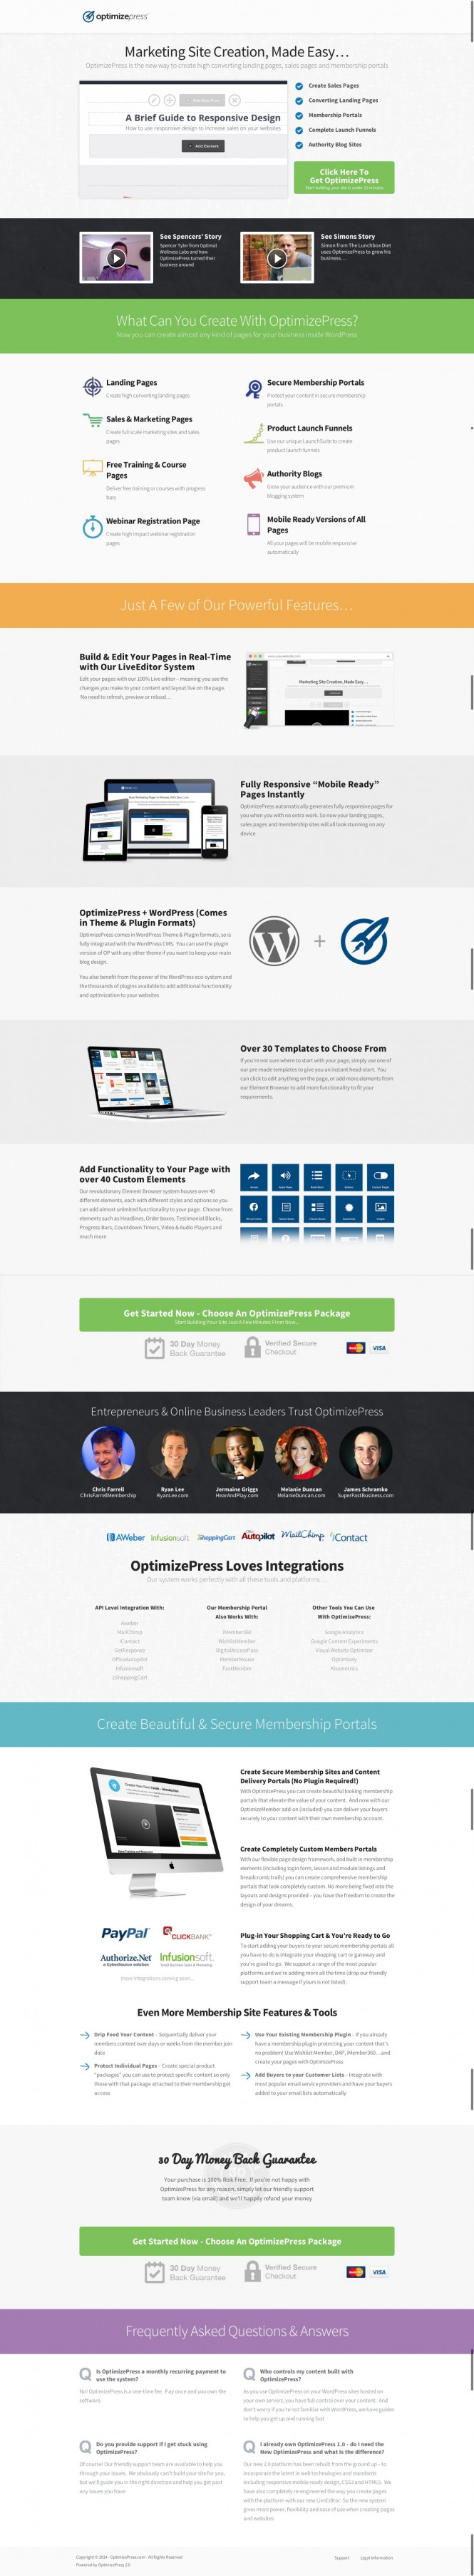 OptimizePress - Create Landing Pages, Sales Pages & Membership Portals